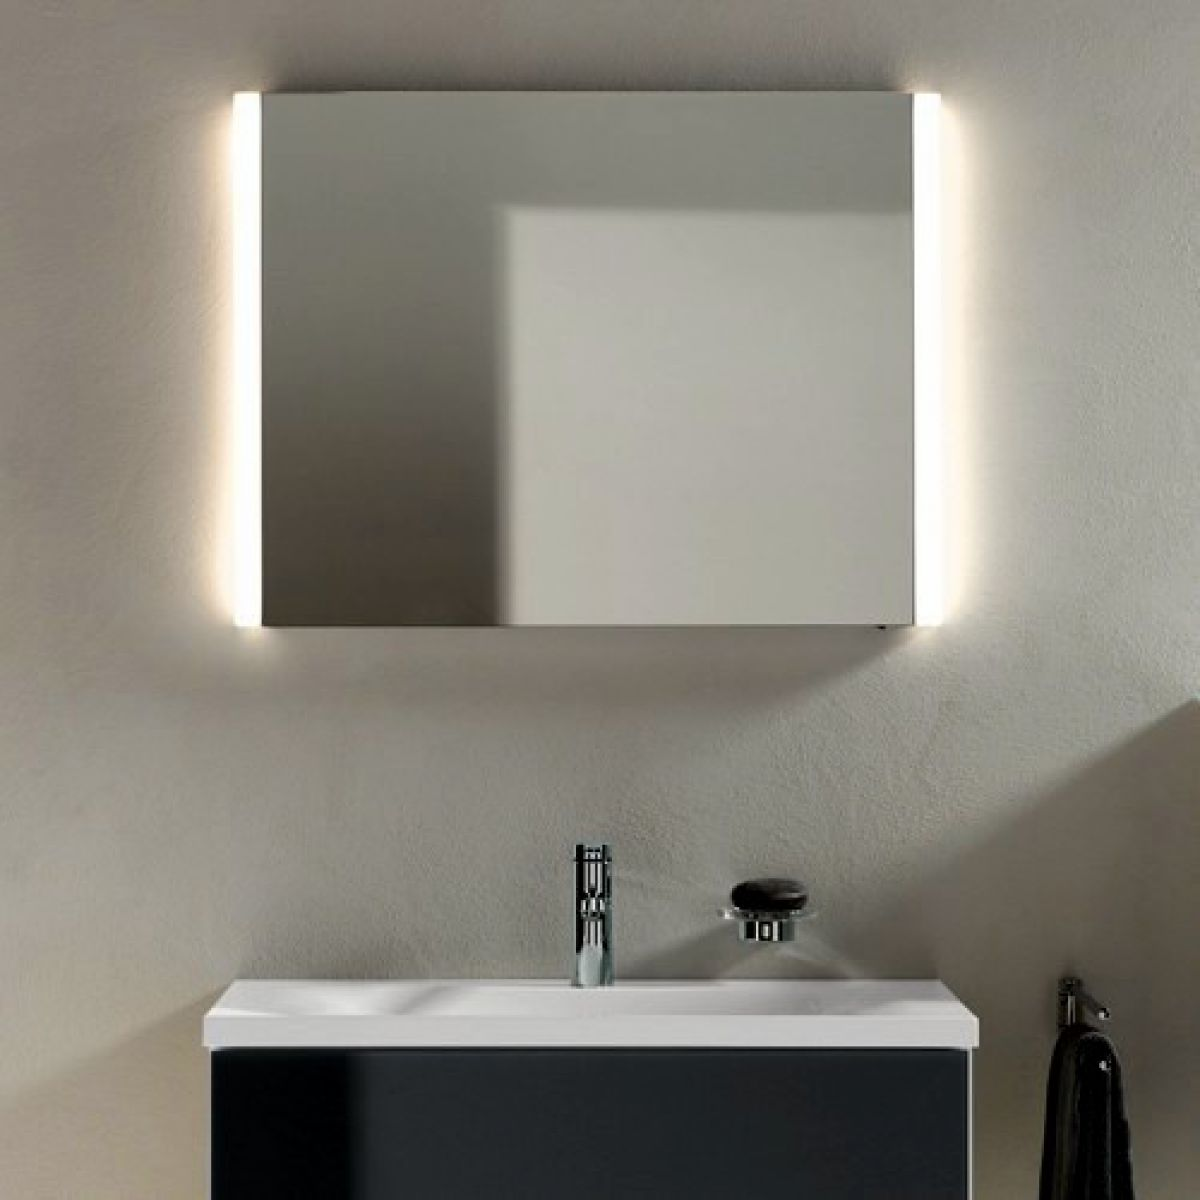 bathroom mirror backlit keuco elegance illuminated bathroom mirror uk bathrooms 11003